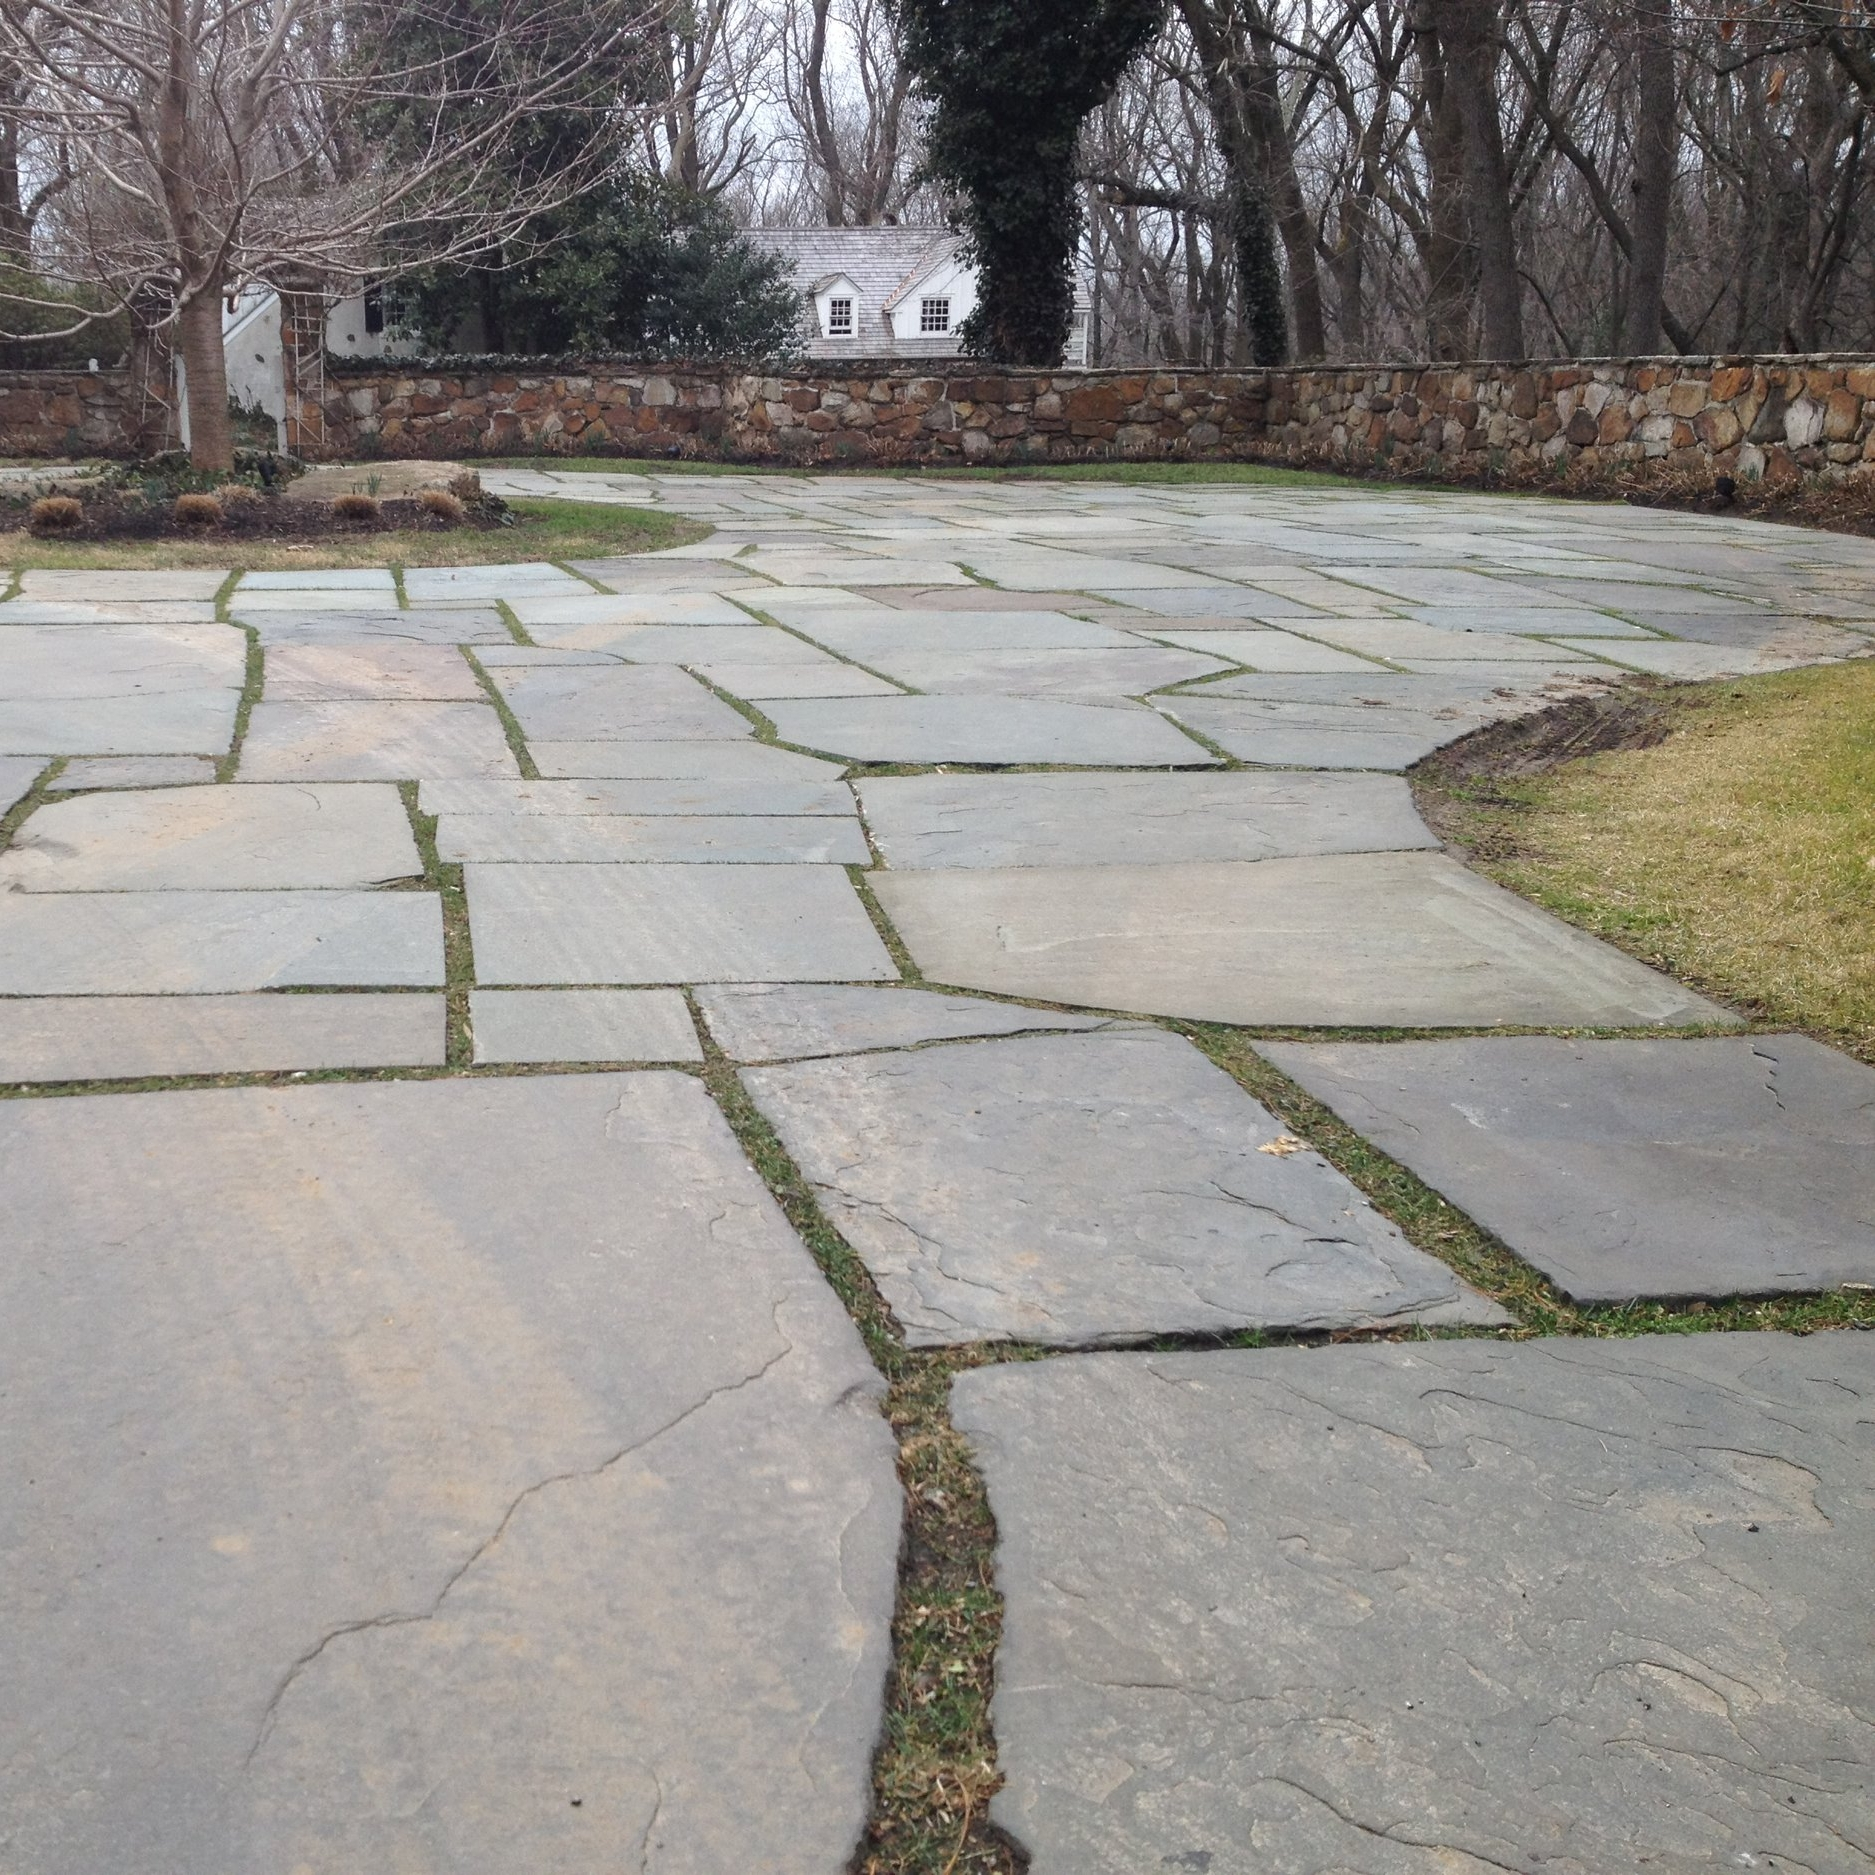 Following the installation of replacement flagstone, we poured compatible hydraulic lime mortar between the open joints –to prevent ice-jacking during the winter –and then finished the surface with a layer of grass seed and dirt,to better weave this historic driveway into the surrounding landscape.